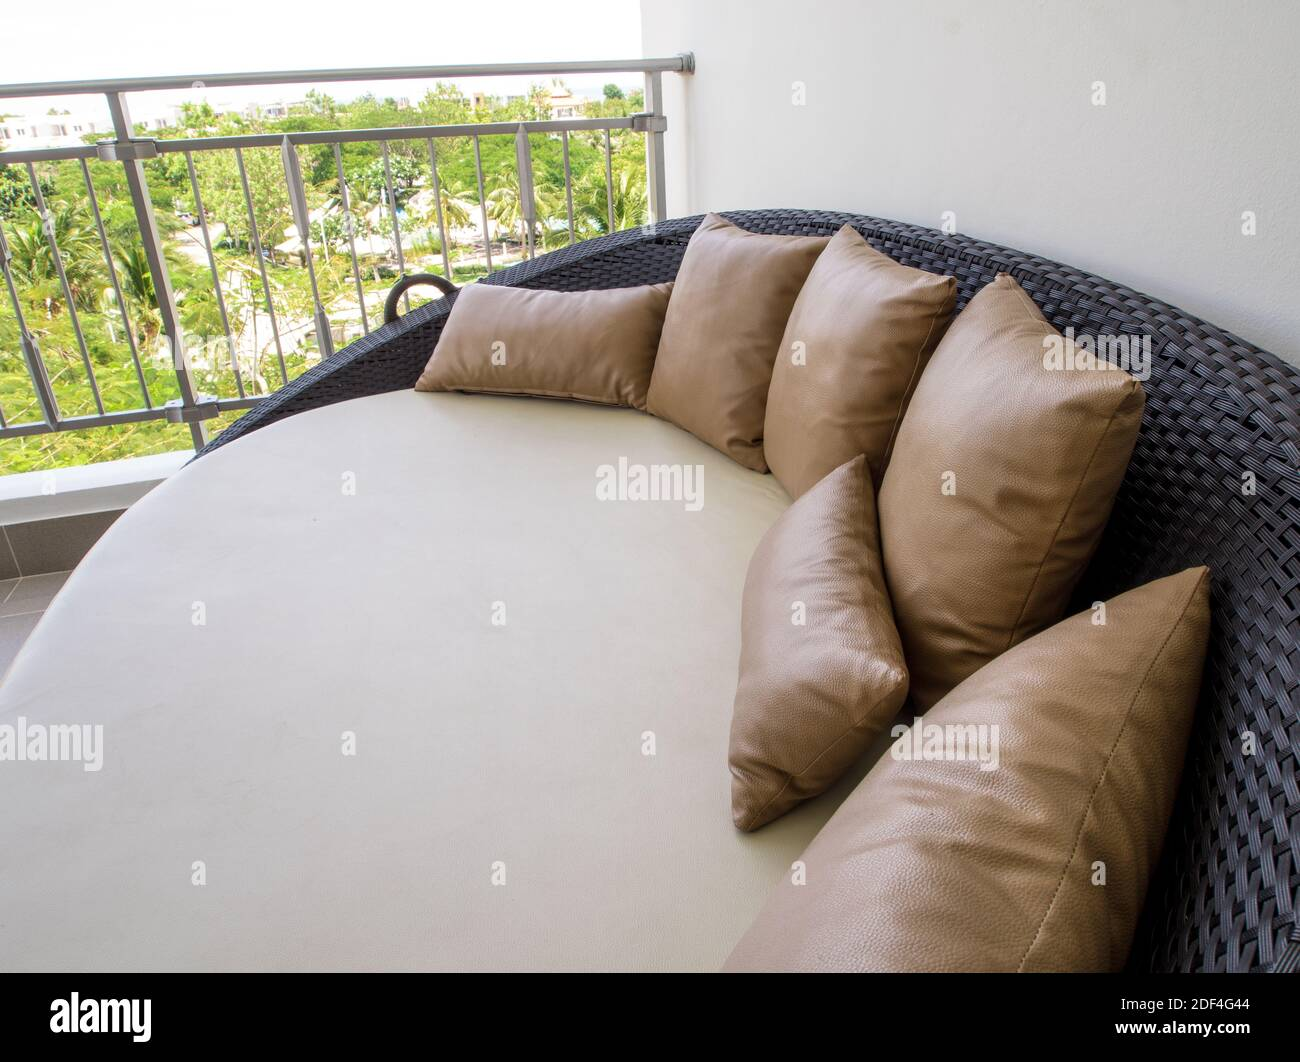 Waterproof Pillowcase And Mattress Cover Of Outdoor Daybed At The Balcony Stock Photo Alamy